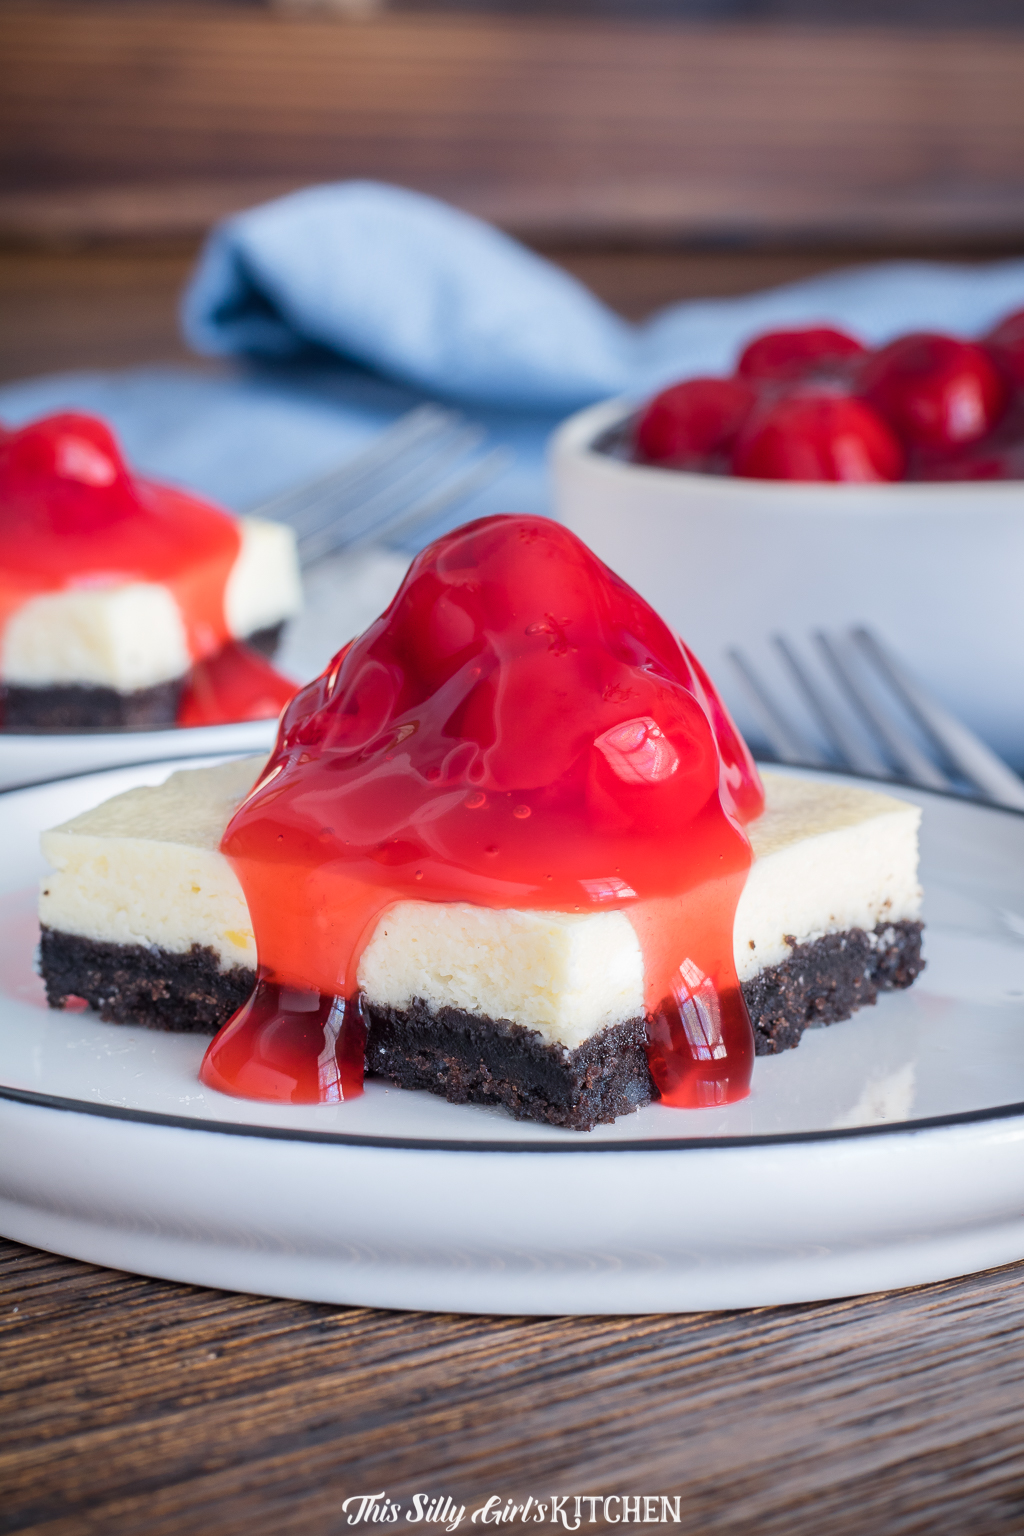 Cheesecake Bars, silky cheesecake on an addictive Oreo crust, topped with cherries! #recipe from thissillygirlskitchen.com #cheesecake #cheesecakebars #oreocheesecake #cherrycheesecake